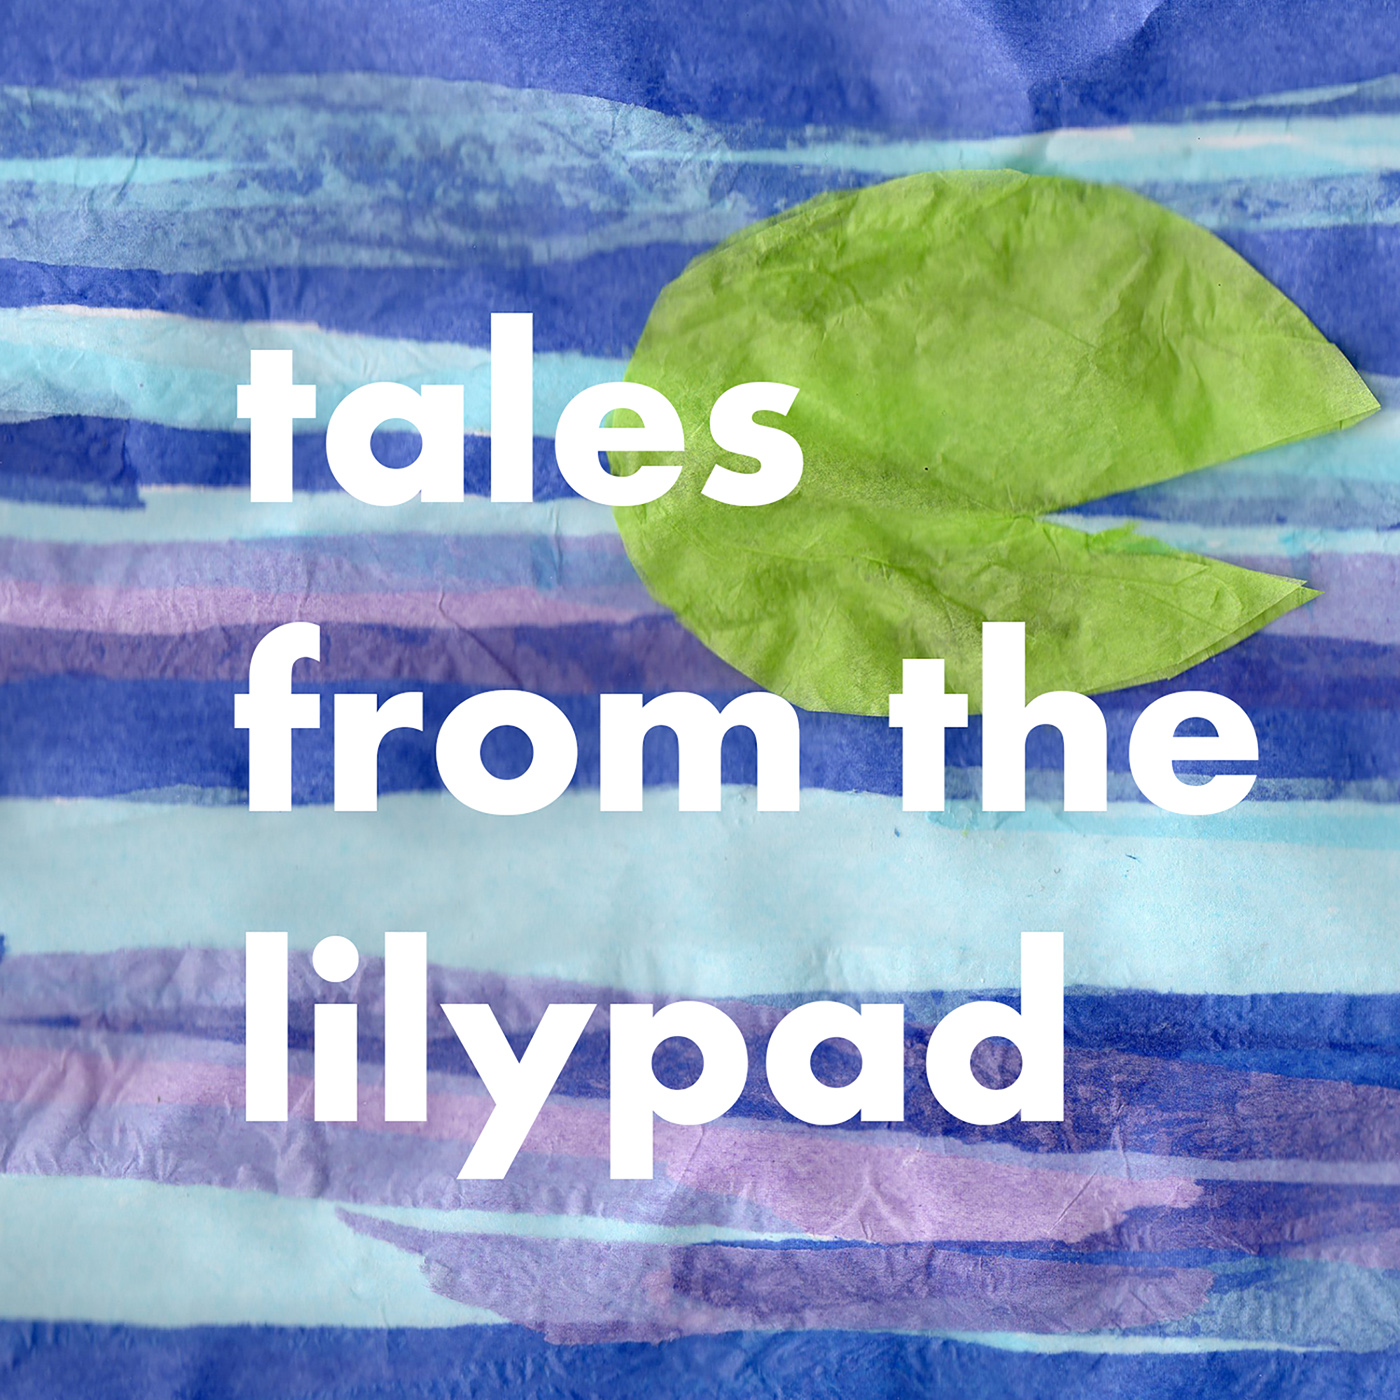 Bedtime Stories Podcast Fairytales and Folk Tales from the